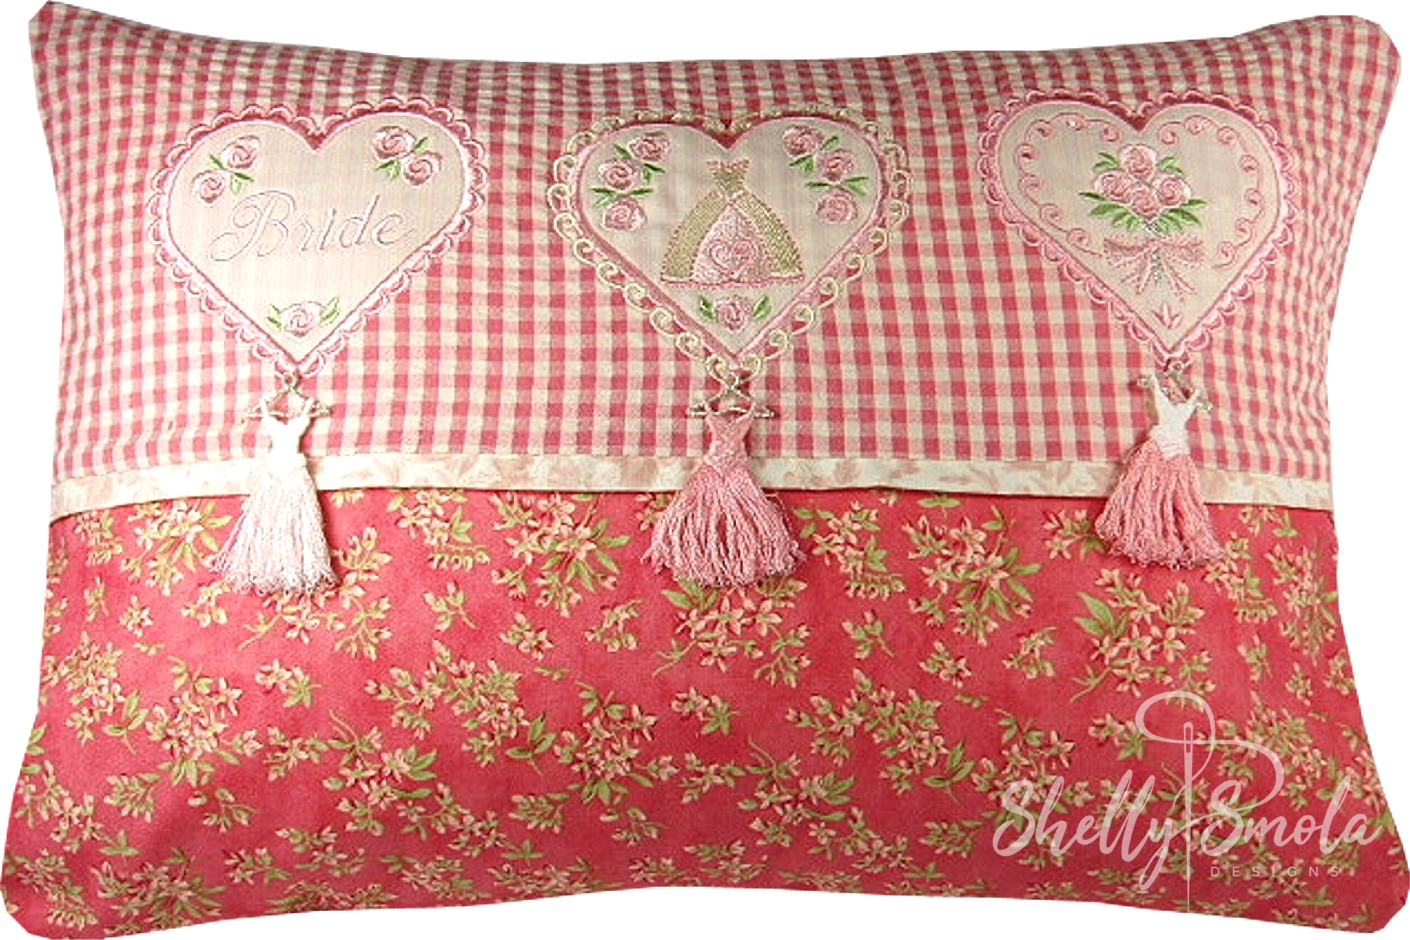 Tassel Pillow by Shelly Smola